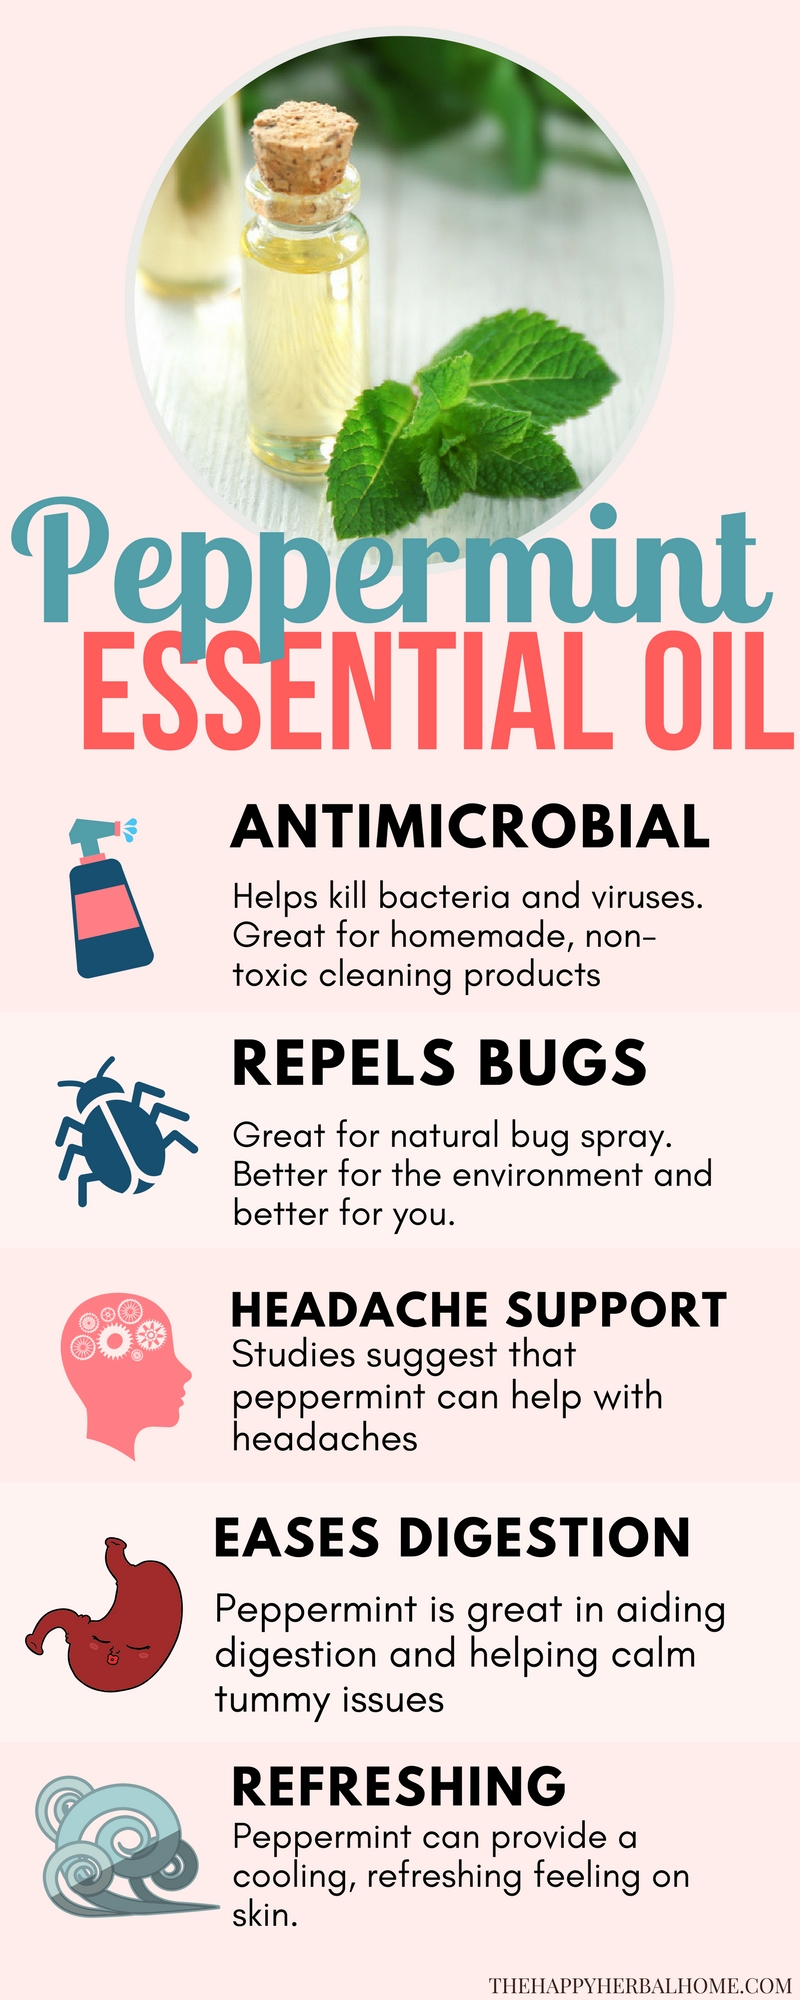 Peppermint essential oil benefits and uses. This natural remedy is great for repelling bugs, massage oils for achy muscles, headache relief